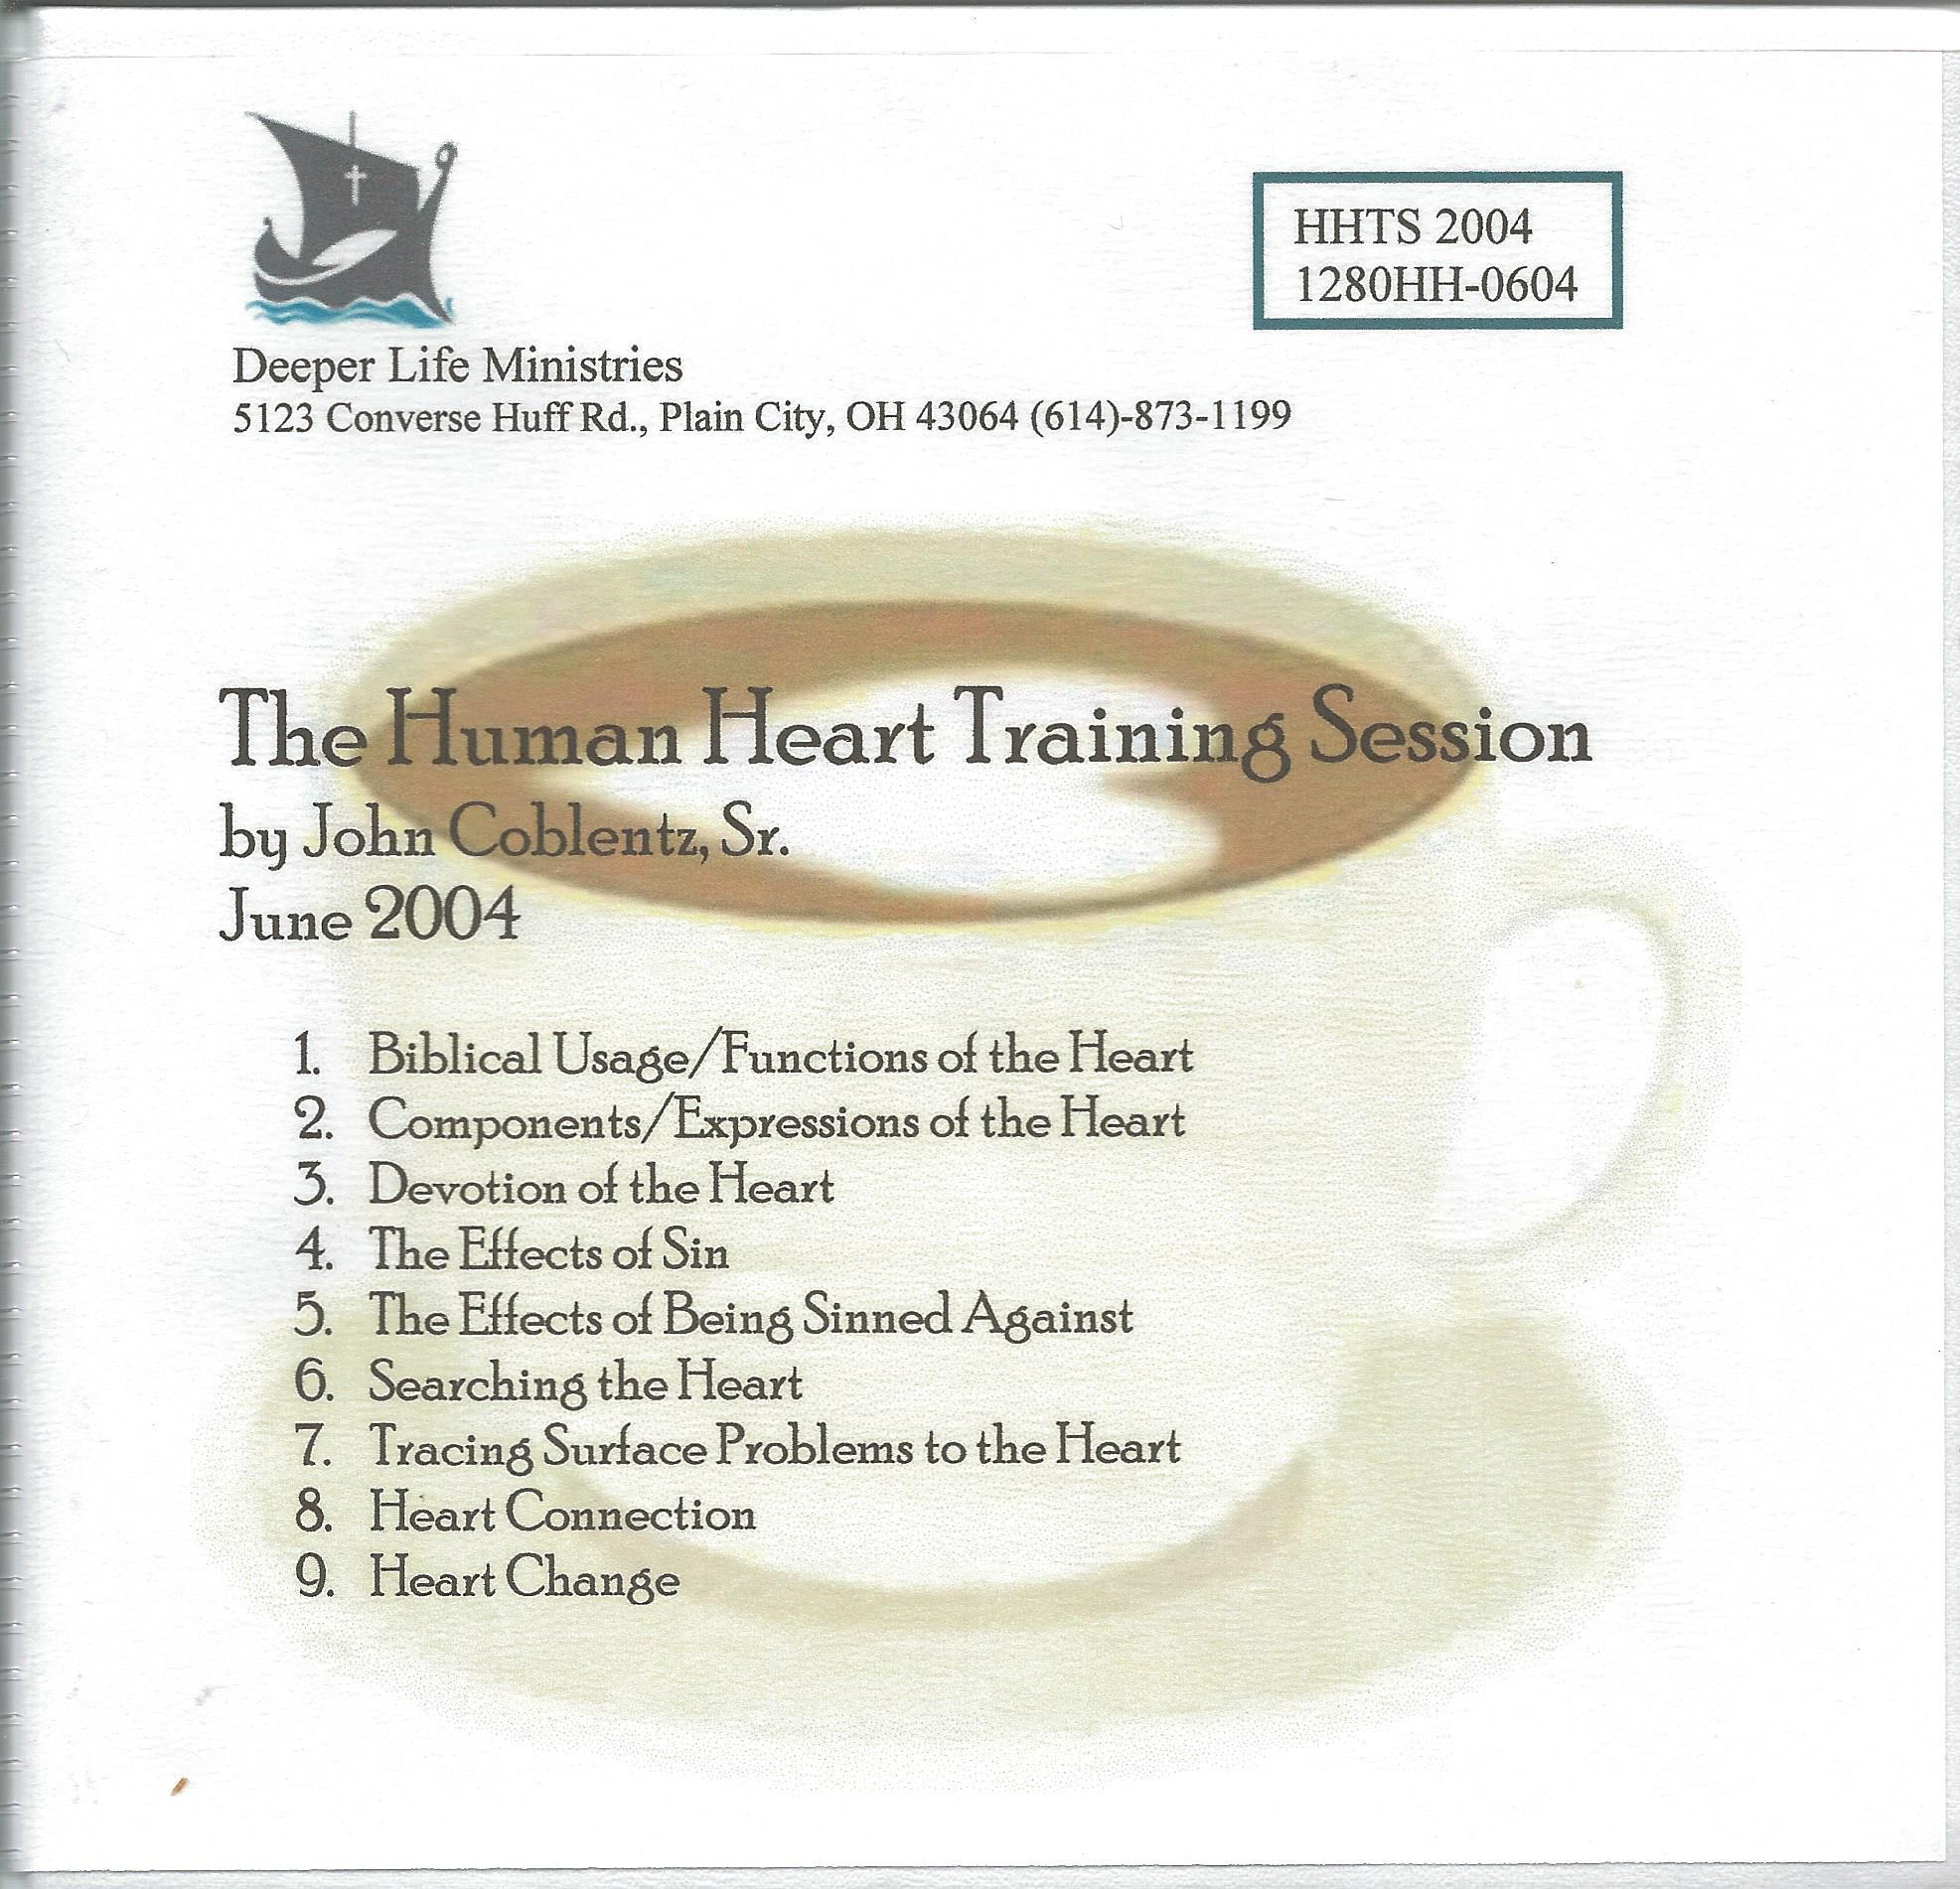 THE HUMAN HEART TRAINING SESSION 9 CD album